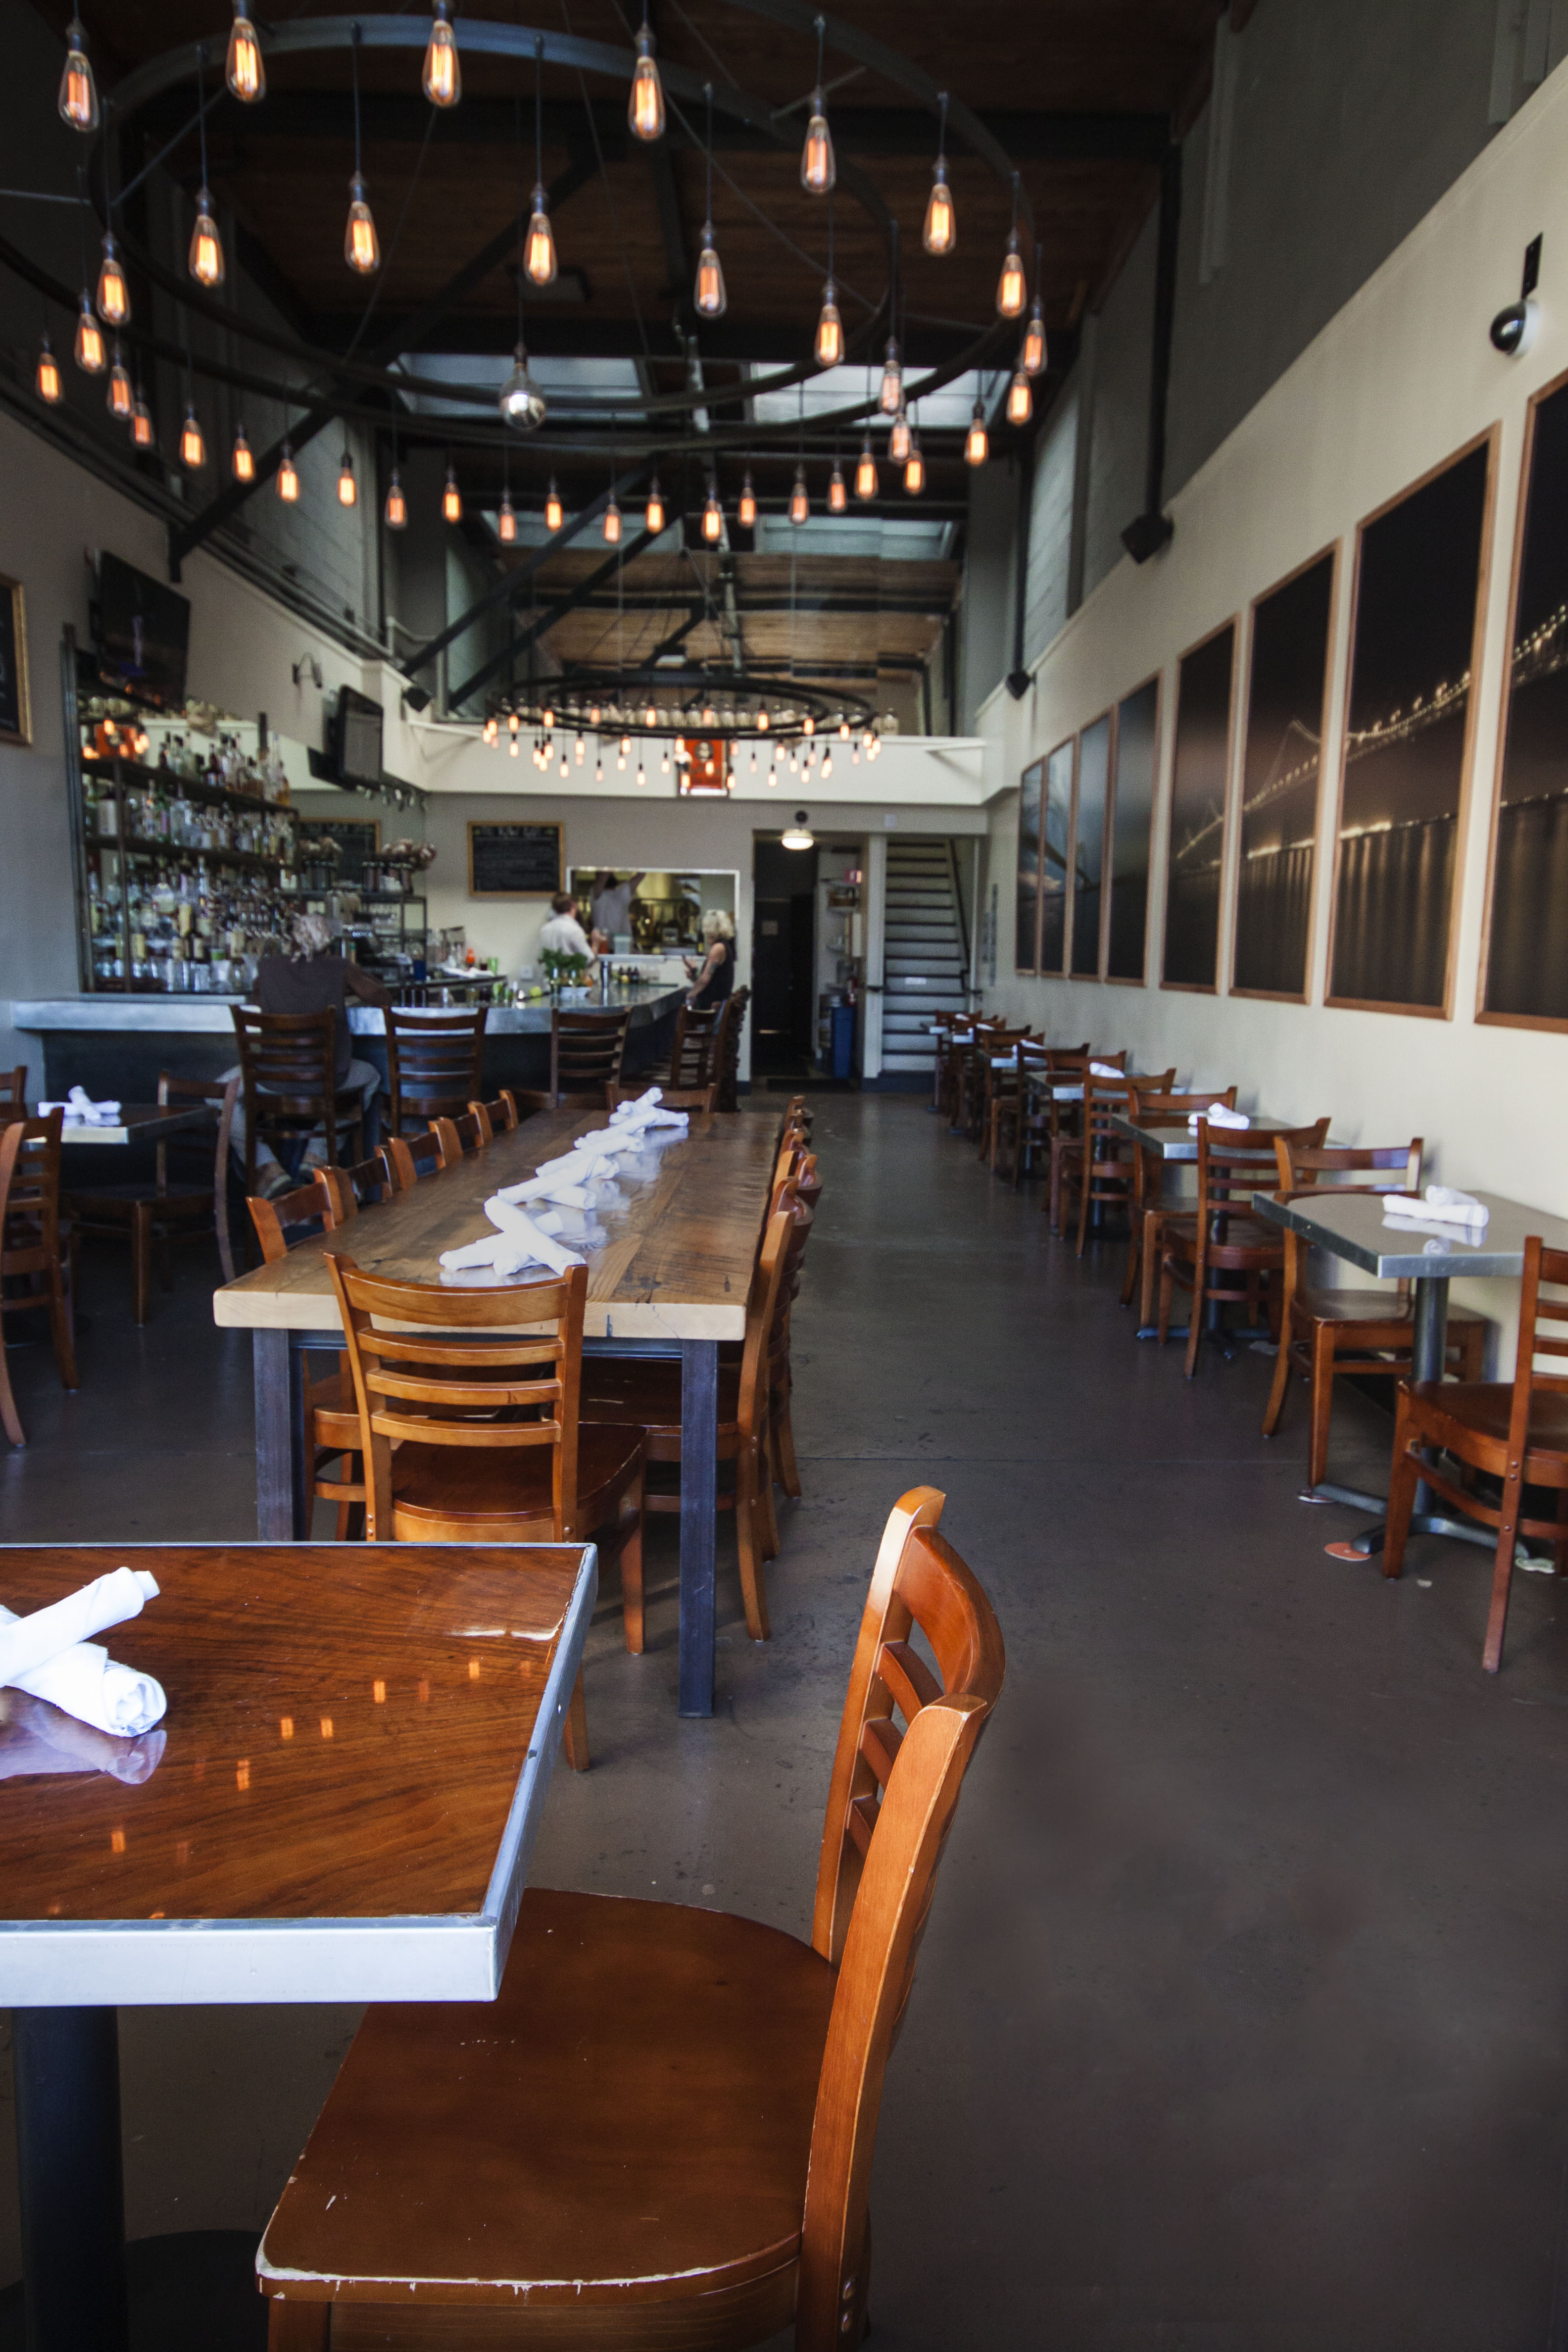 Hutch Bar & Kitchen to Host a Lagunitas Beer Paired Dinner by Tom Walton in Berkeley